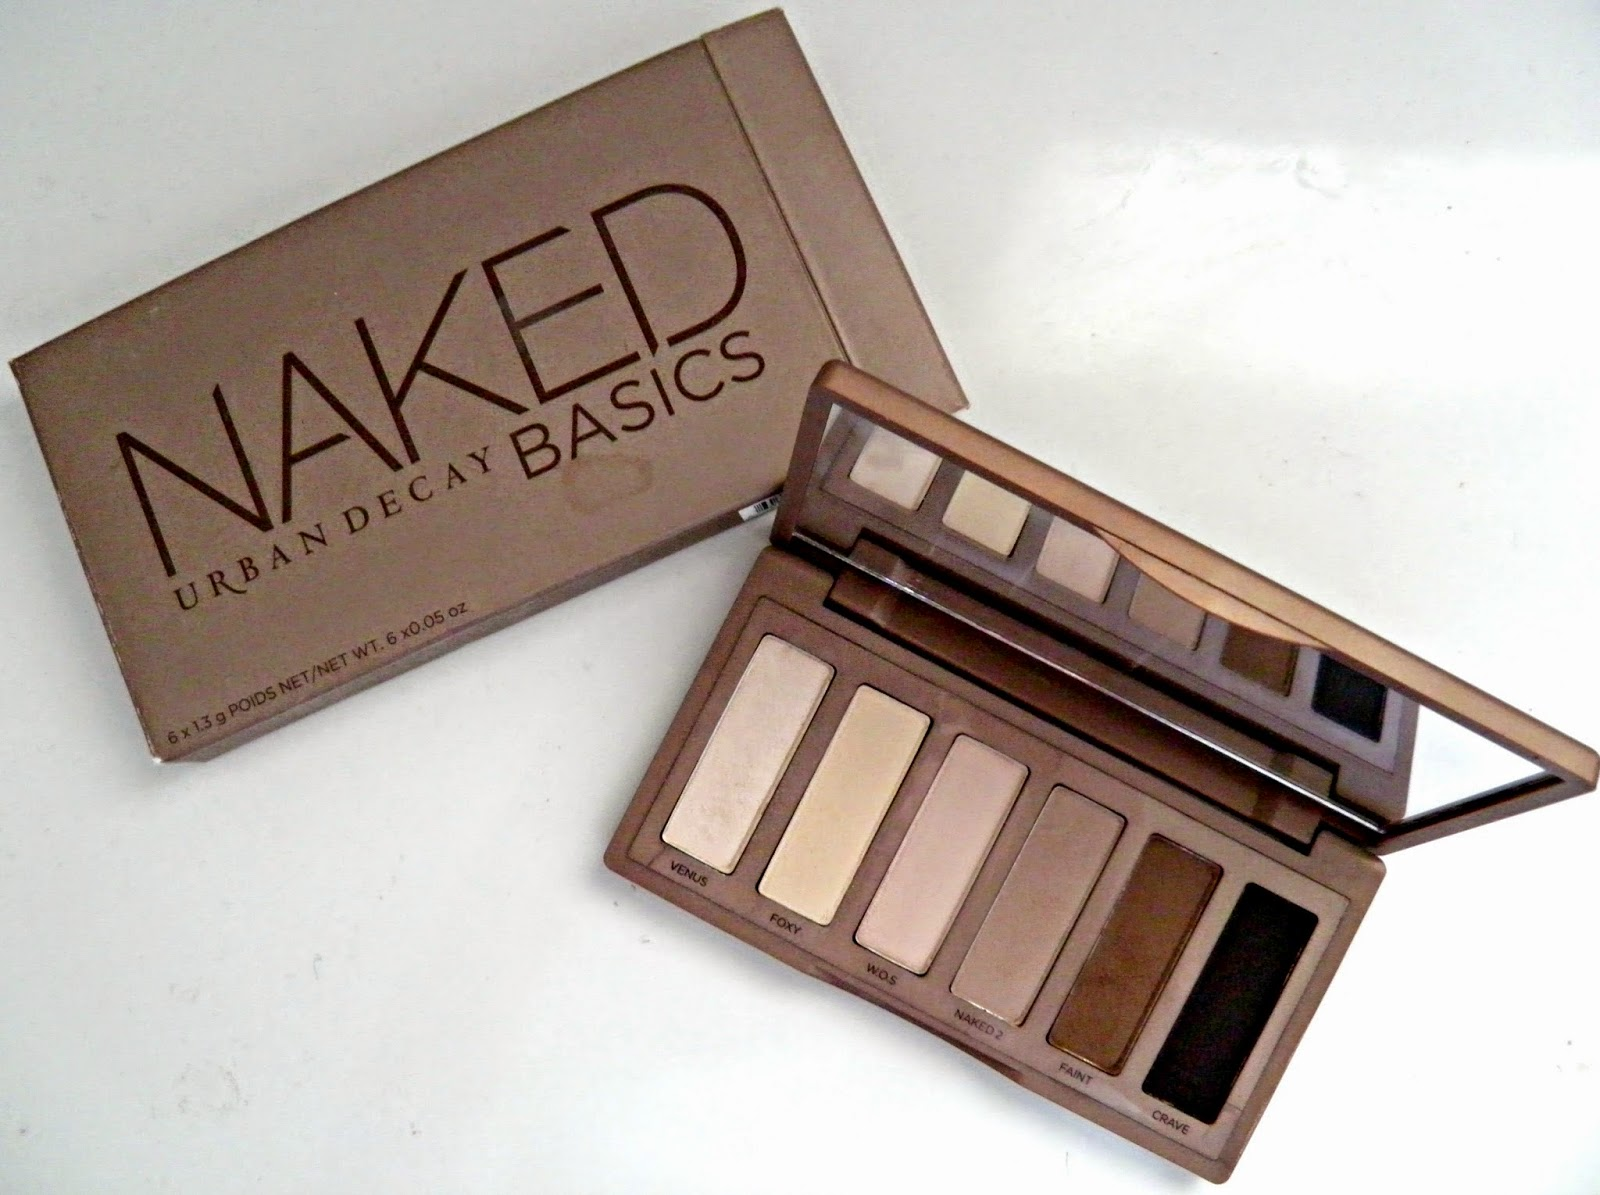 Urban decay naked palette review foto 812